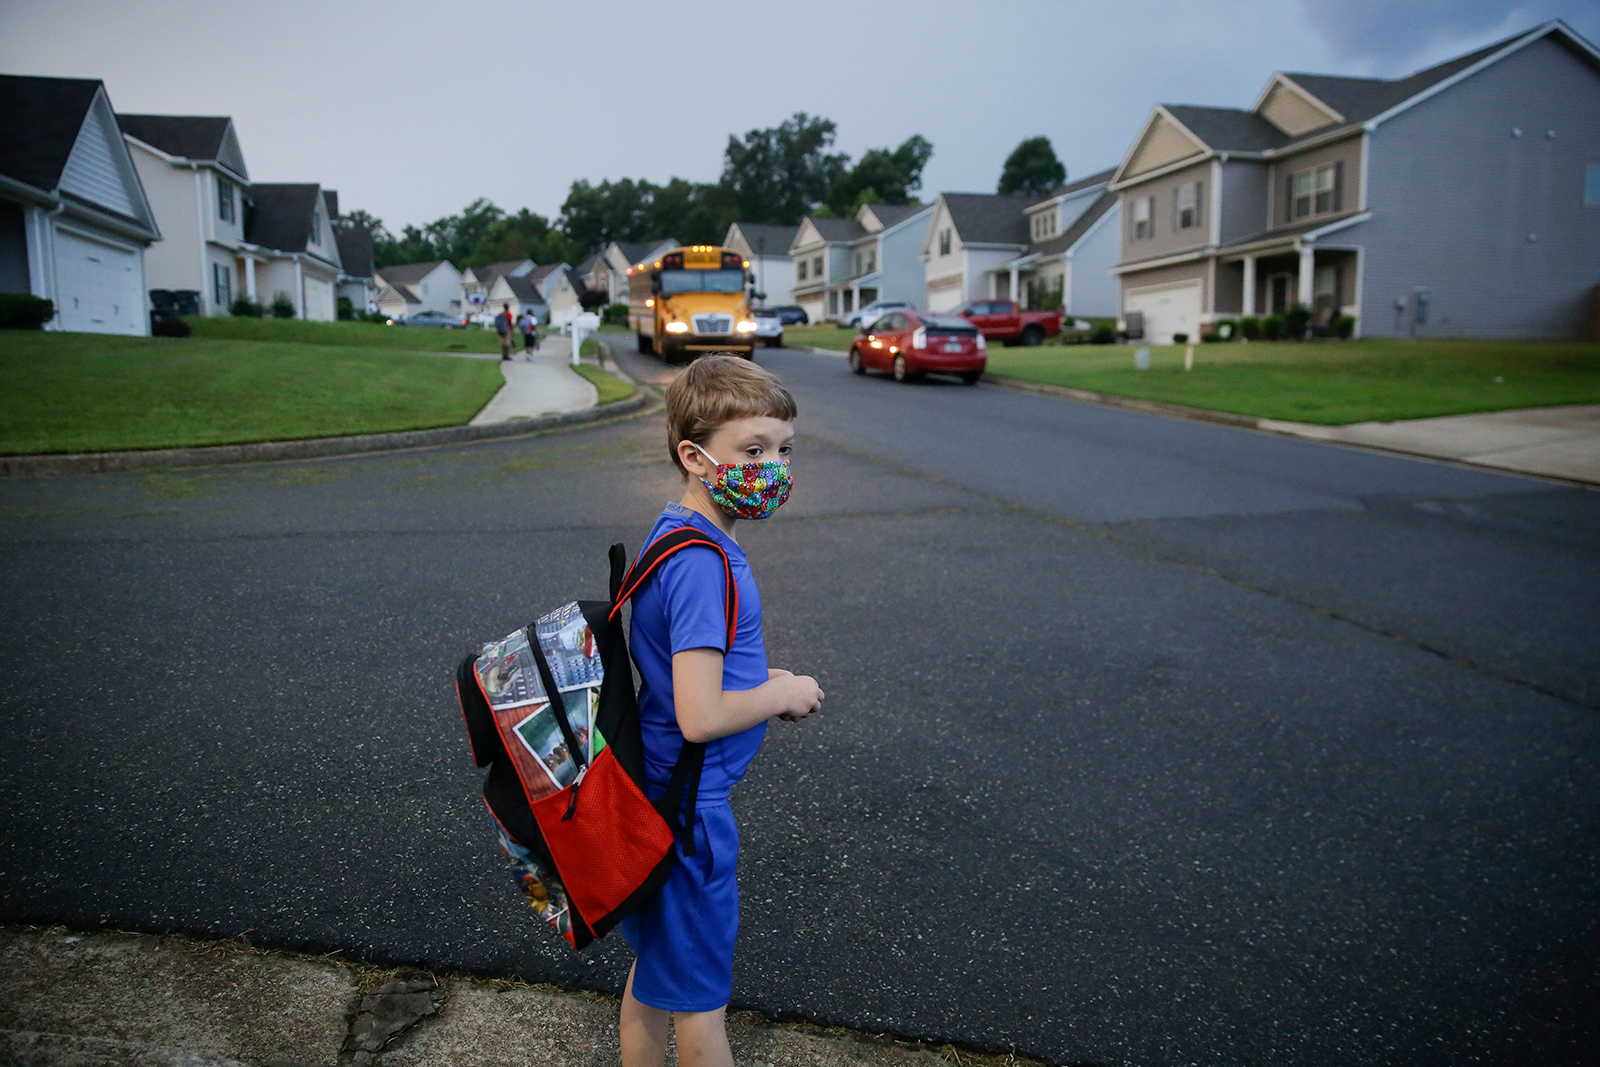 Paul Adamus, 7, waits at the bus stop for the first day of school on Monday, Aug. 3, 2020, in Dallas, Georgia.